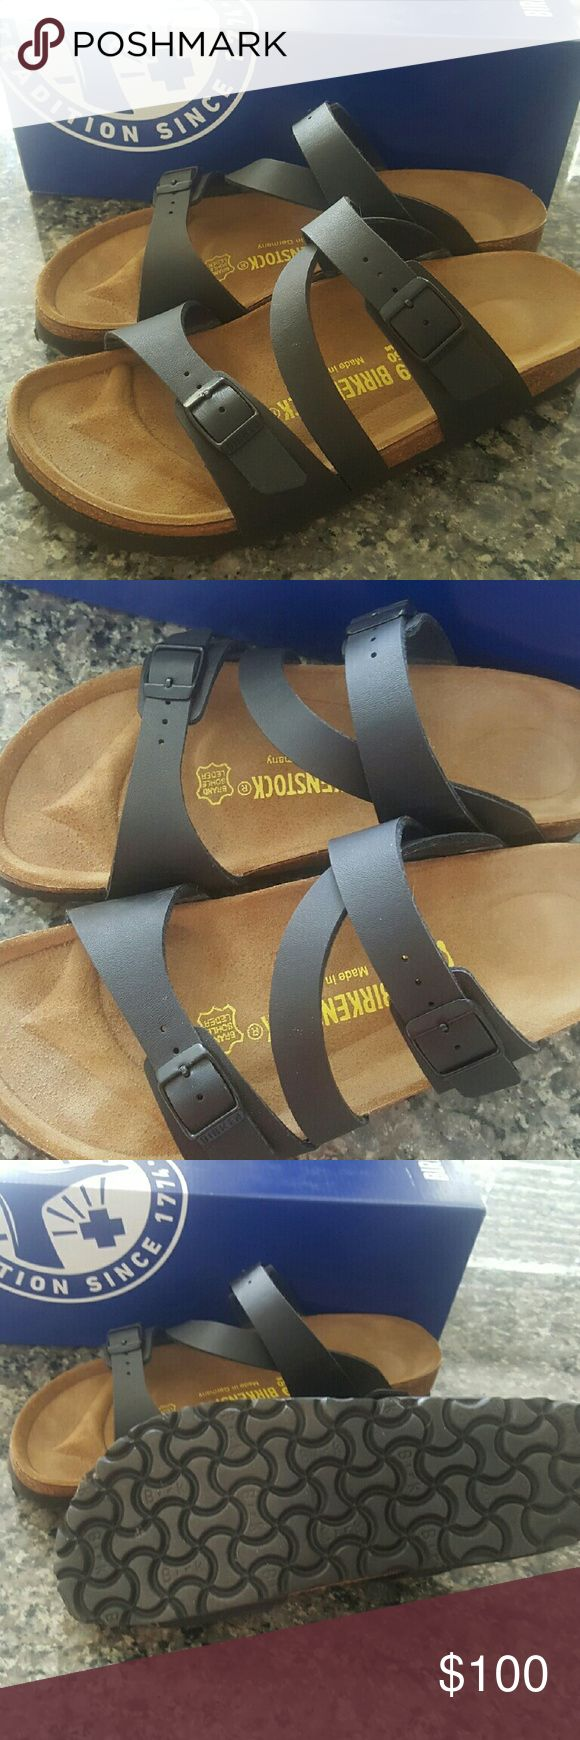 Birkenstocks- Salina Birkenstocks- Salina. Brand new in box! Birkenstock Shoes